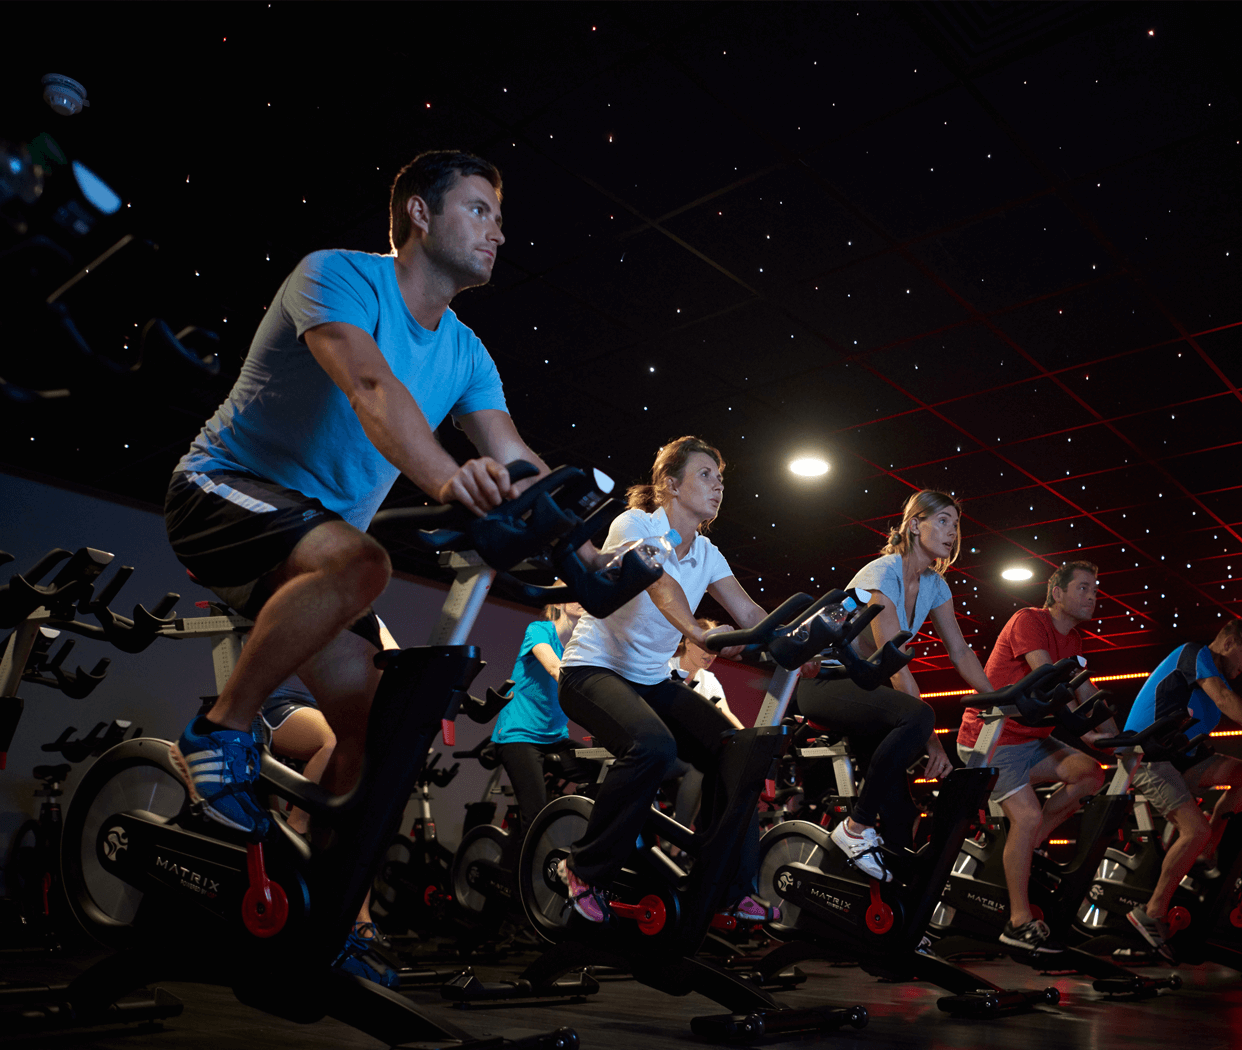 Sufferfest - The Blender - Virtual® Studio - Endurance